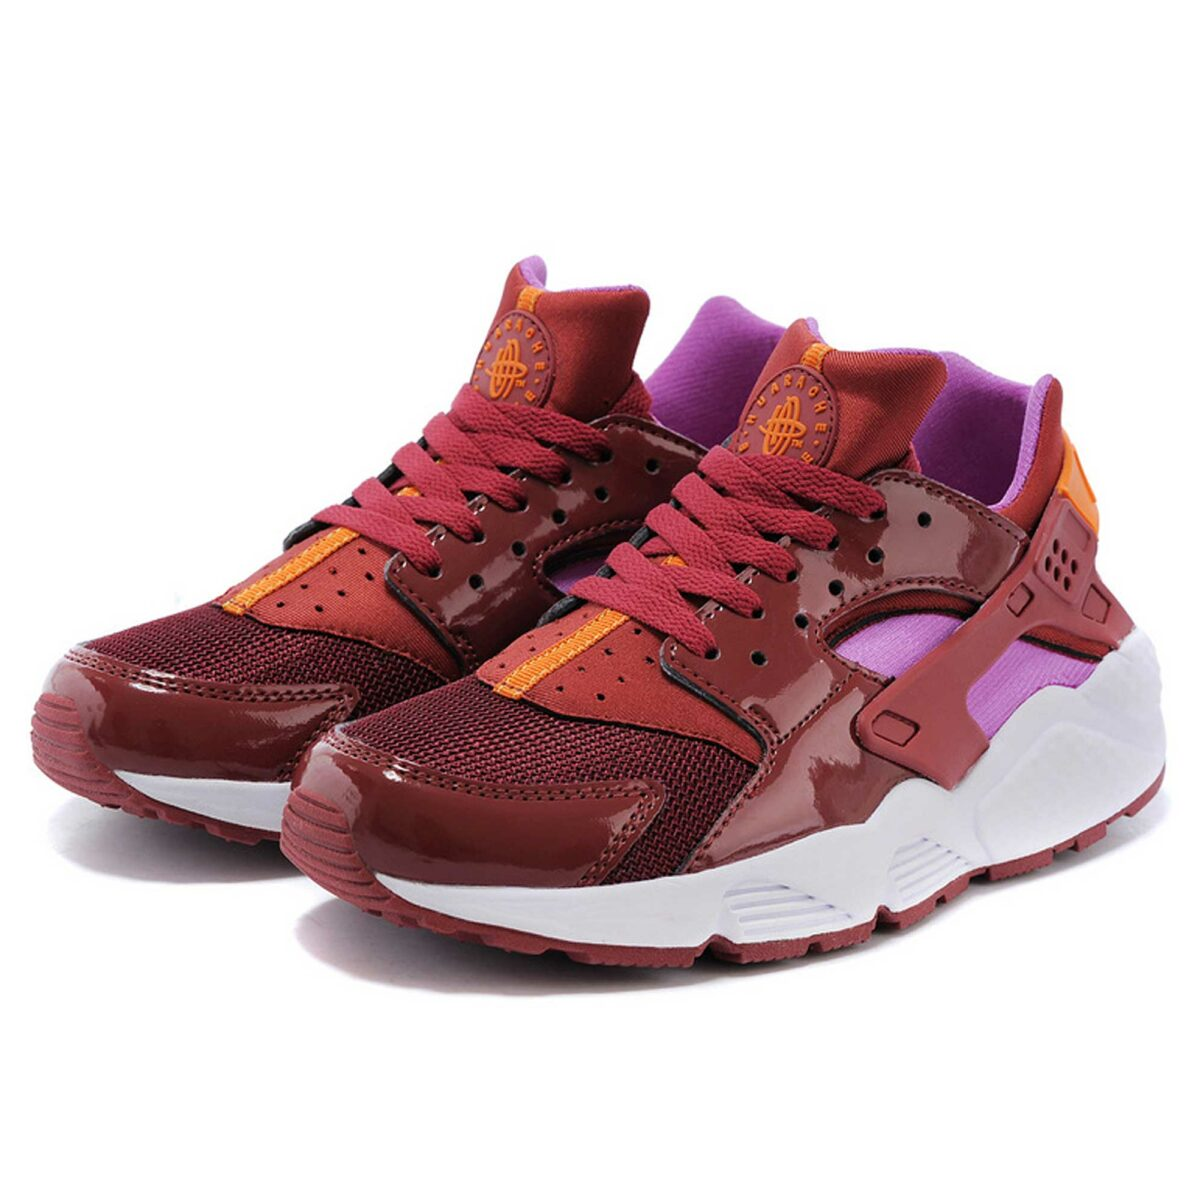 nike air huarache deep burgundy 683818_681 купить